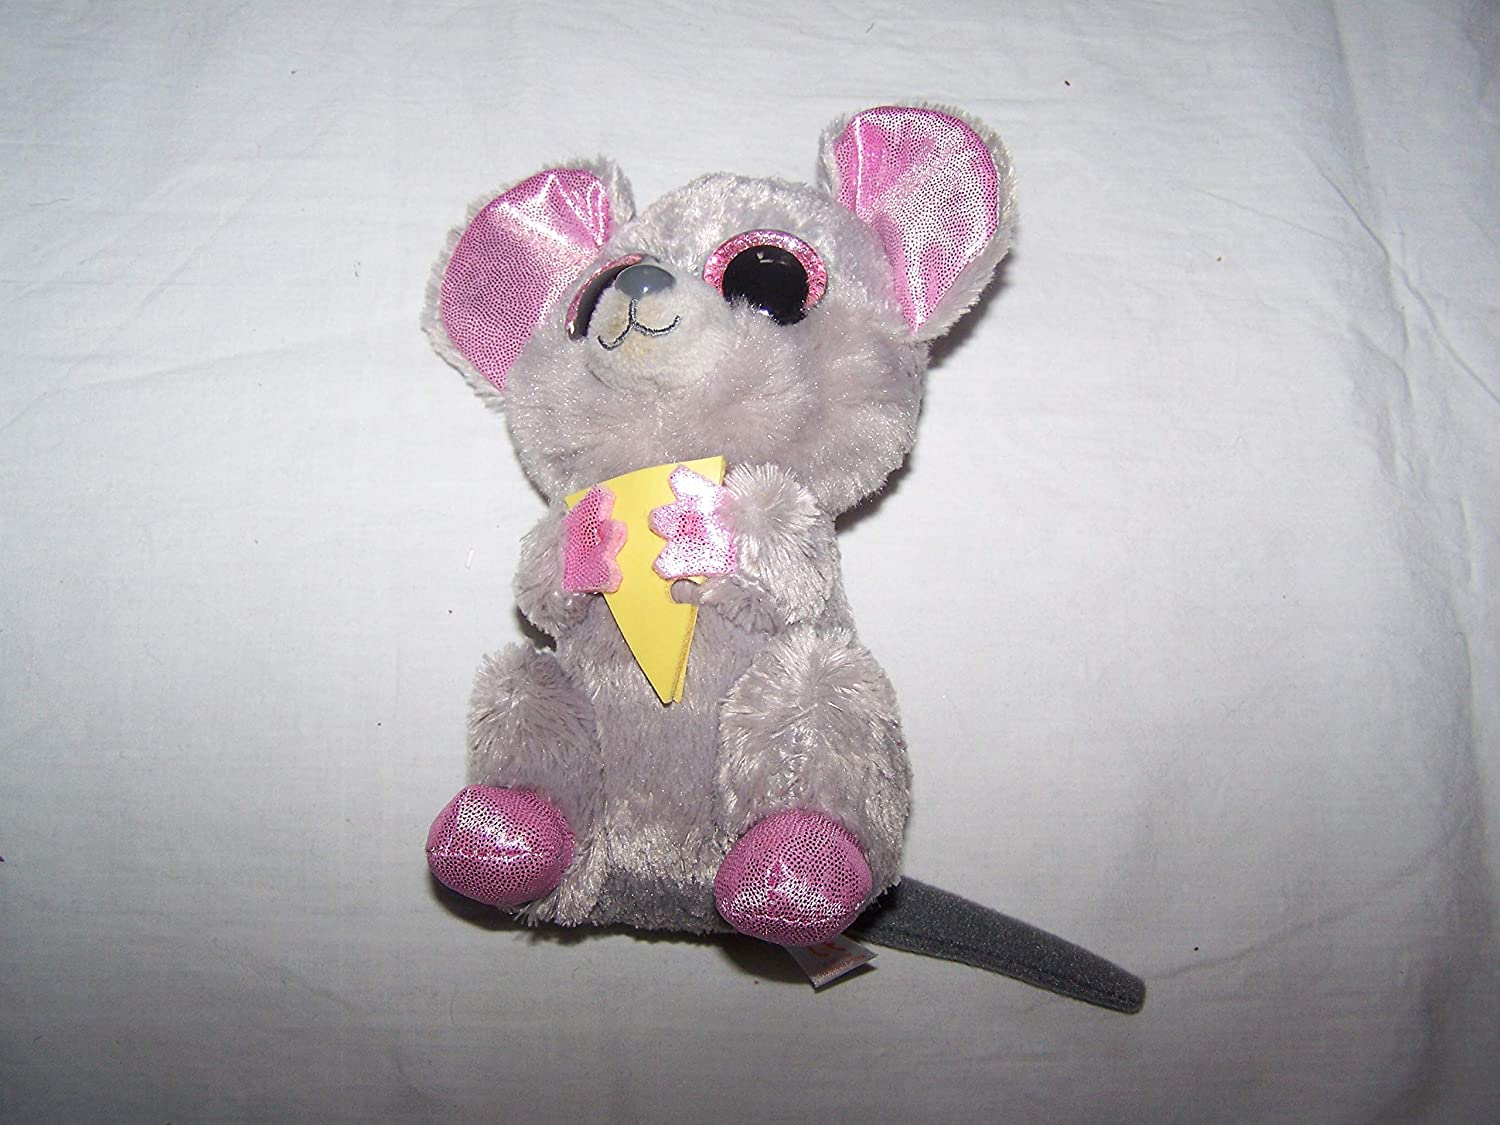 TY Beanie Boo Plush - Squeaker the Mouse 15cm by Ty  Amazon.co.uk  Toys    Games c0a1112775ef